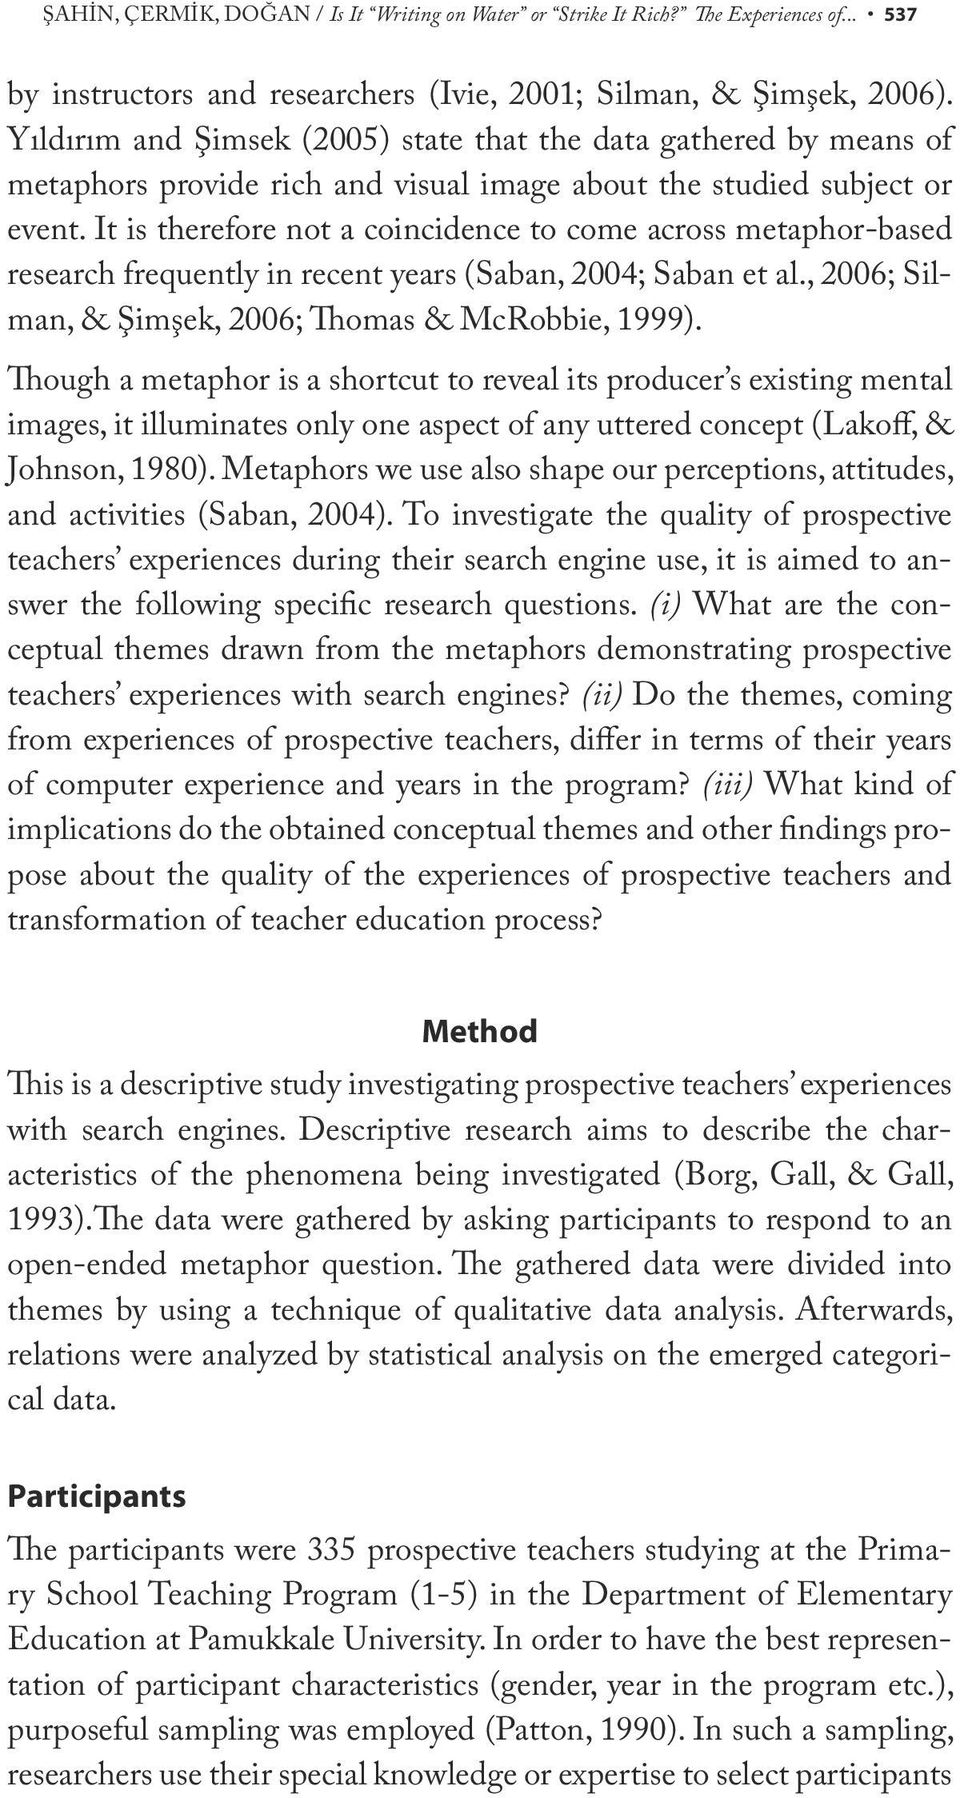 It is therefore not a coincidence to come across metaphor-based research frequently in recent years (Saban, 2004; Saban et al., 2006; Silman, & Şimşek, 2006; Thomas & McRobbie, 1999).